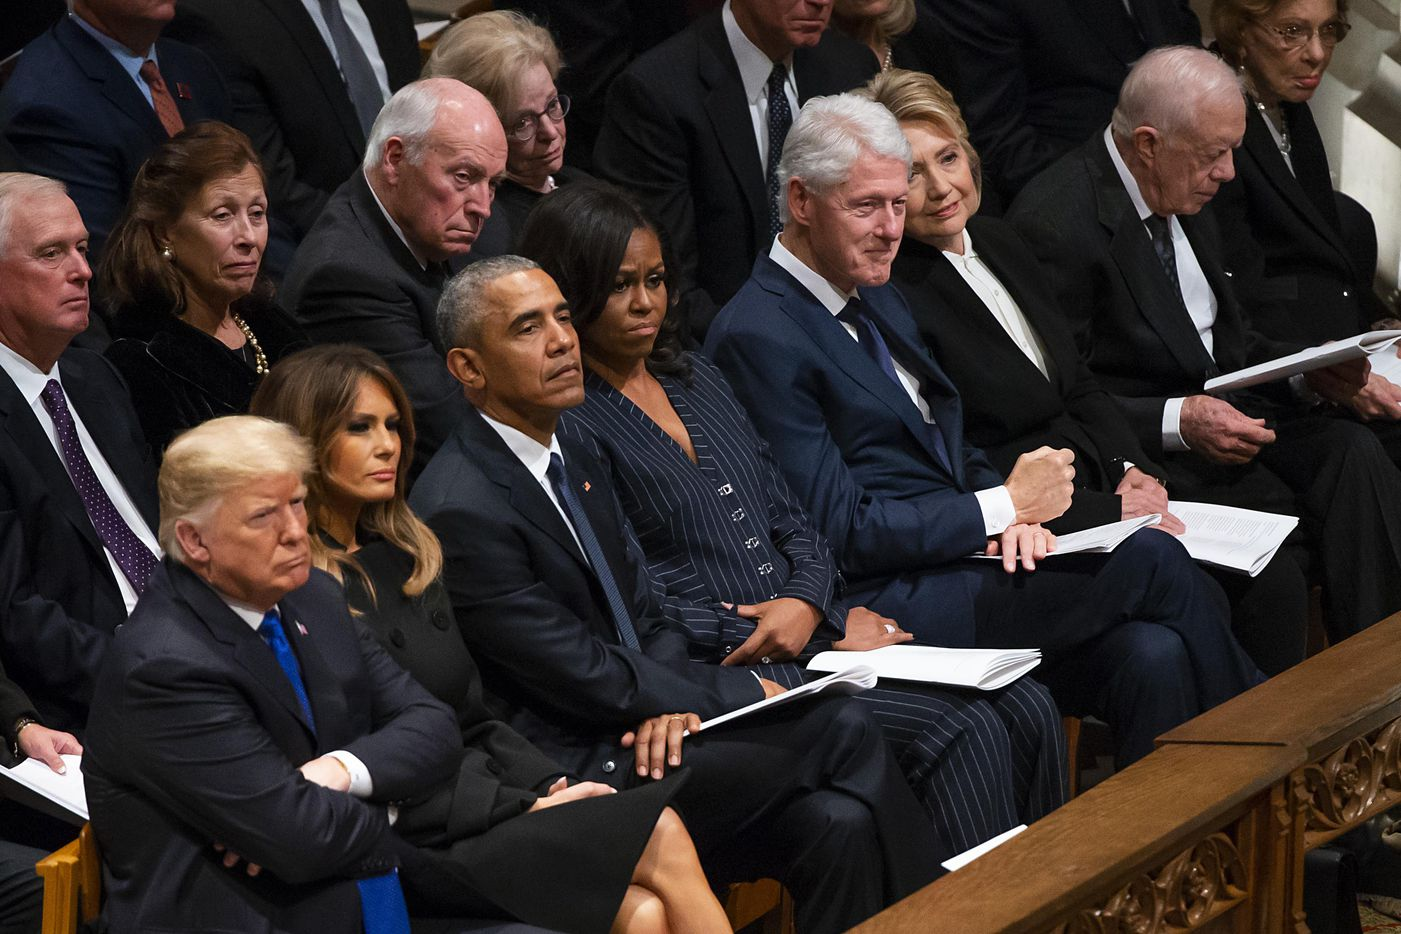 during the State Funeral for George H.W. Bush, the 41st President of the United States, at the Washington National Cathedral on Wednesday, Dec. 5, 2018, in Washington. (Smiley N. Pool/The Dallas Morning News)